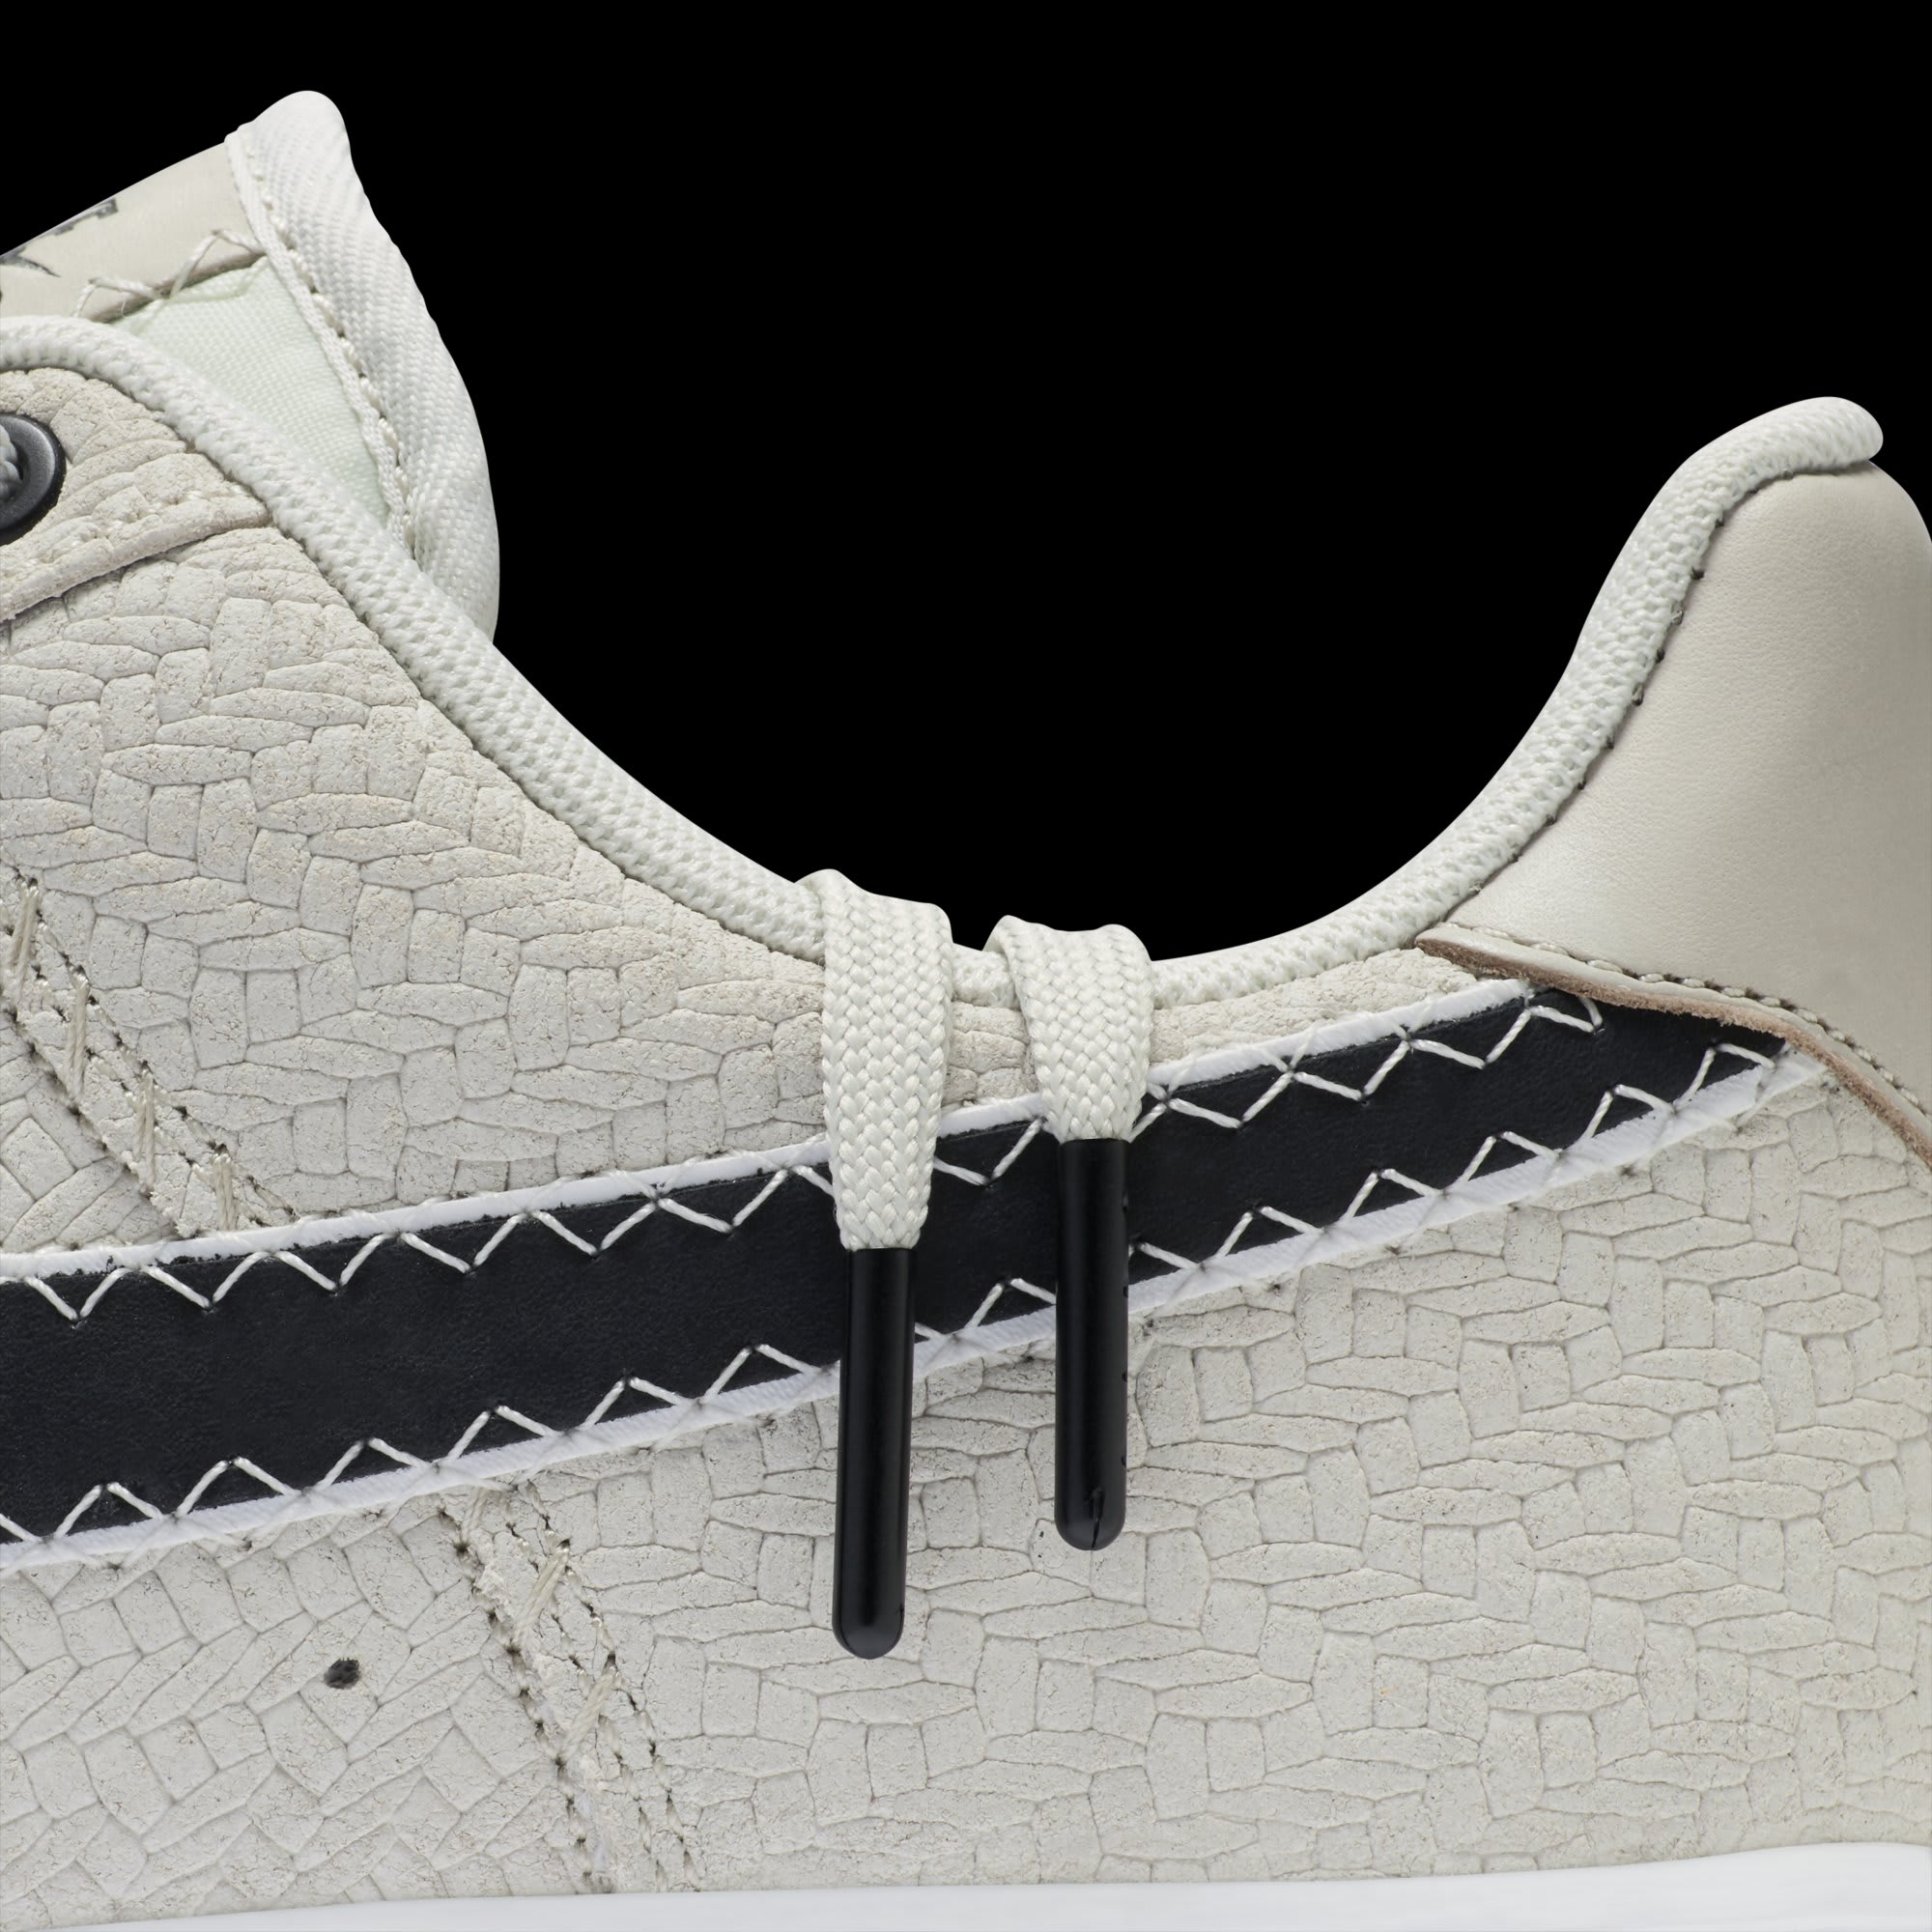 Nike Air Force 1 Low 'N7' AO2369-001 (Detail)